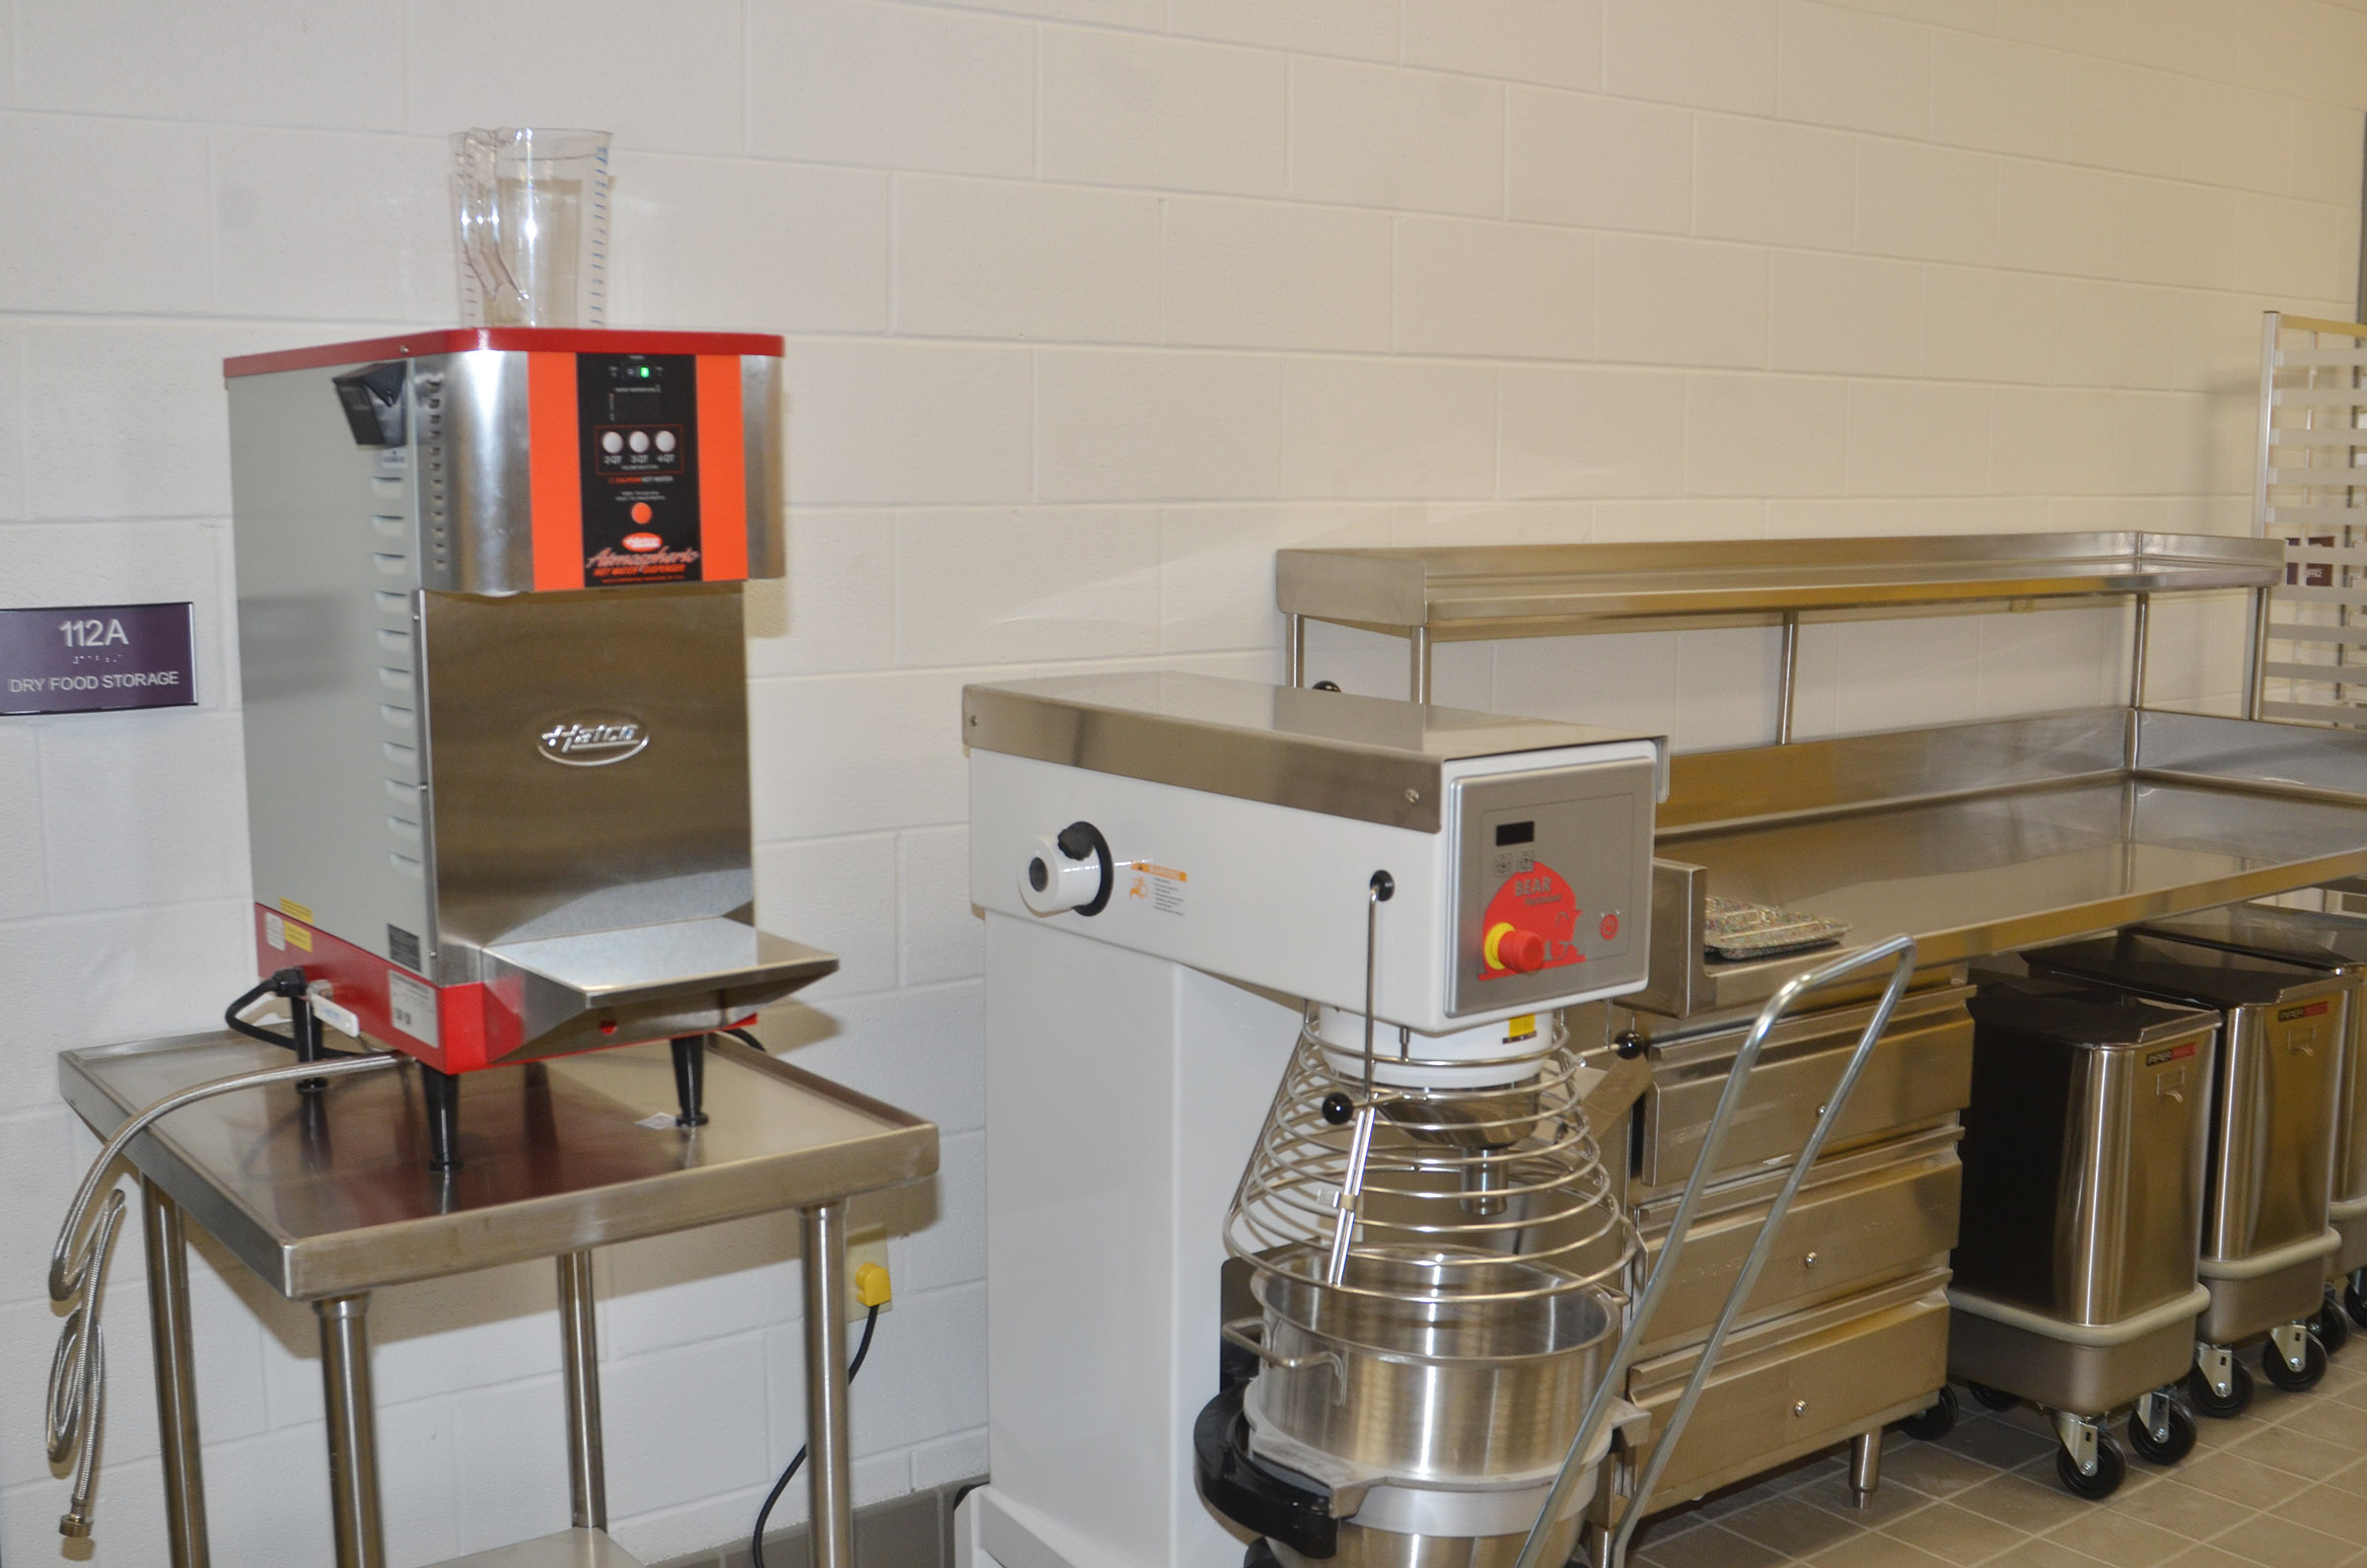 New equipment has been installed in the CES kitchen.